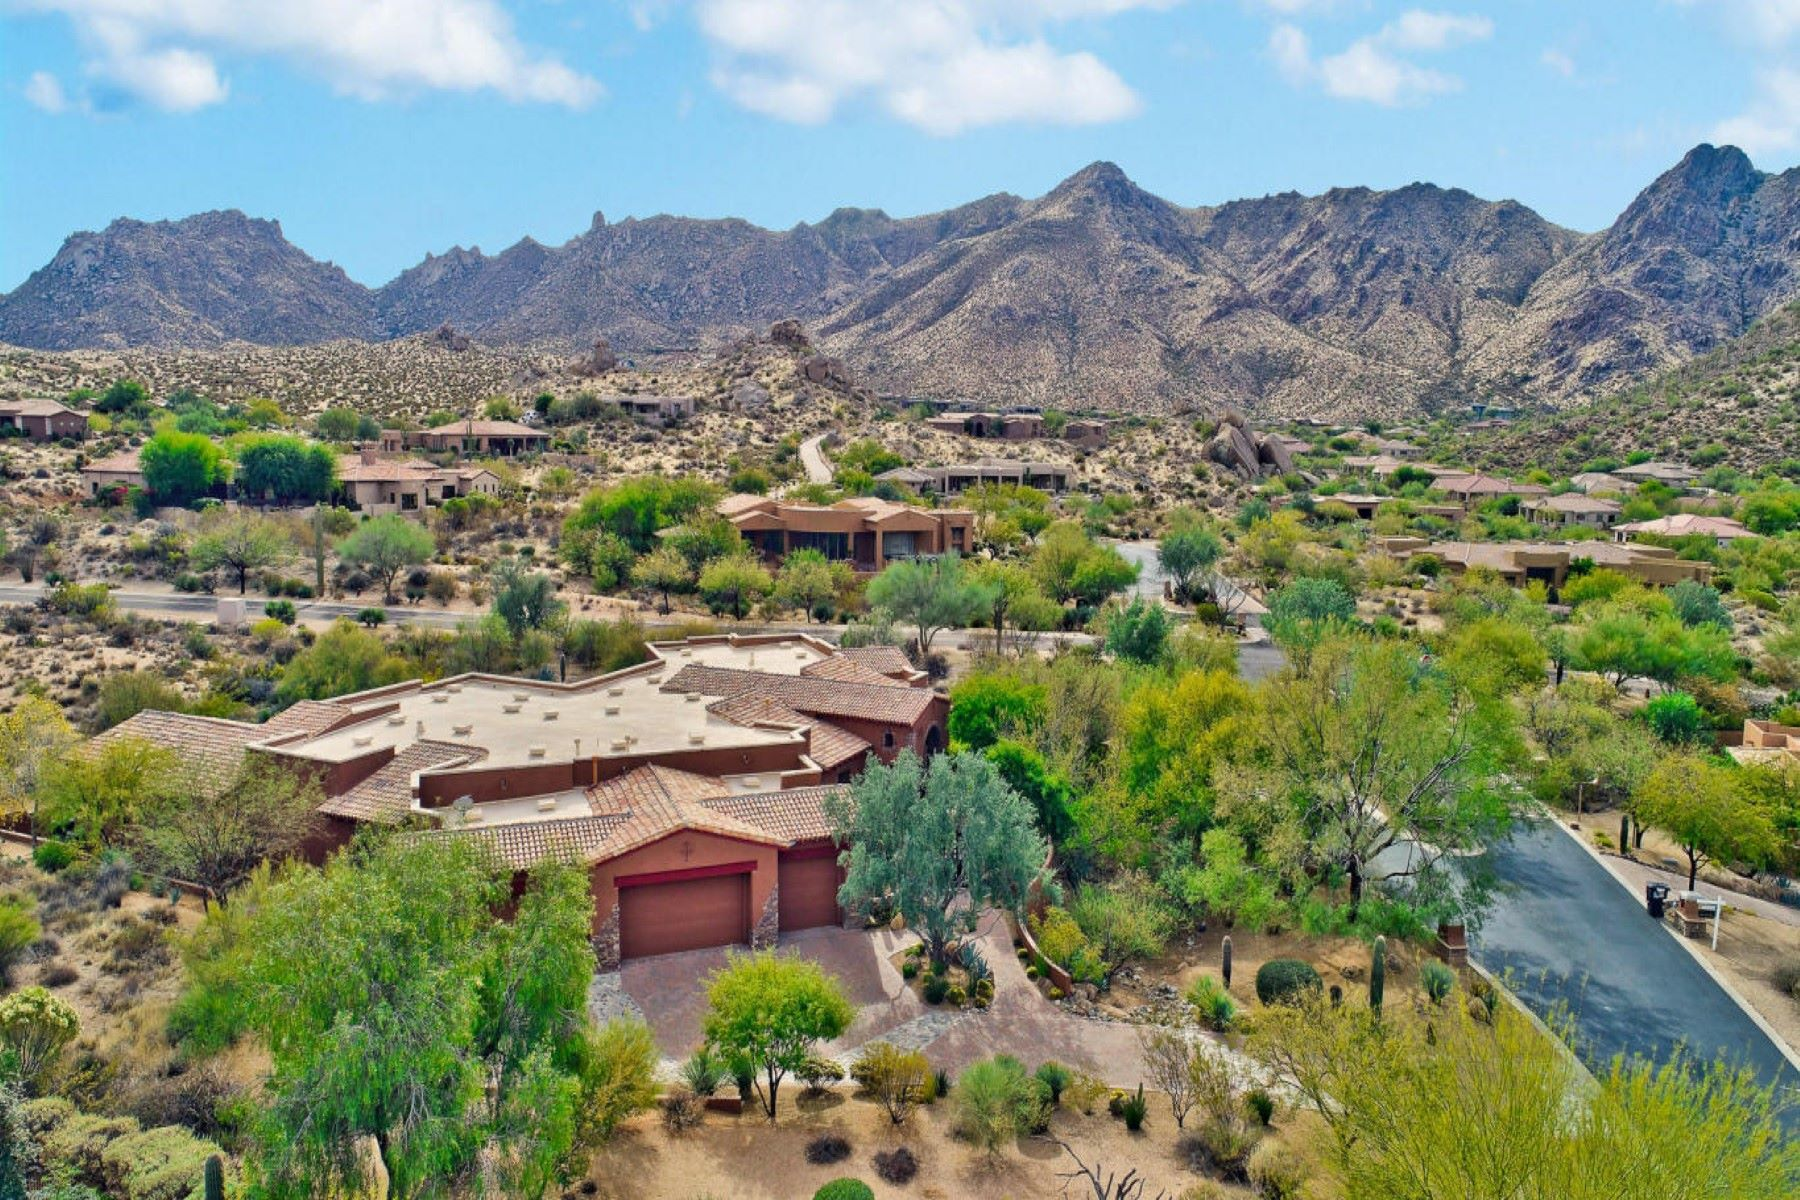 Single Family Home for Sale at Opulent estate in gated Sonoran Crest 24231 N 120TH PL, Scottsdale, Arizona, 85255 United States